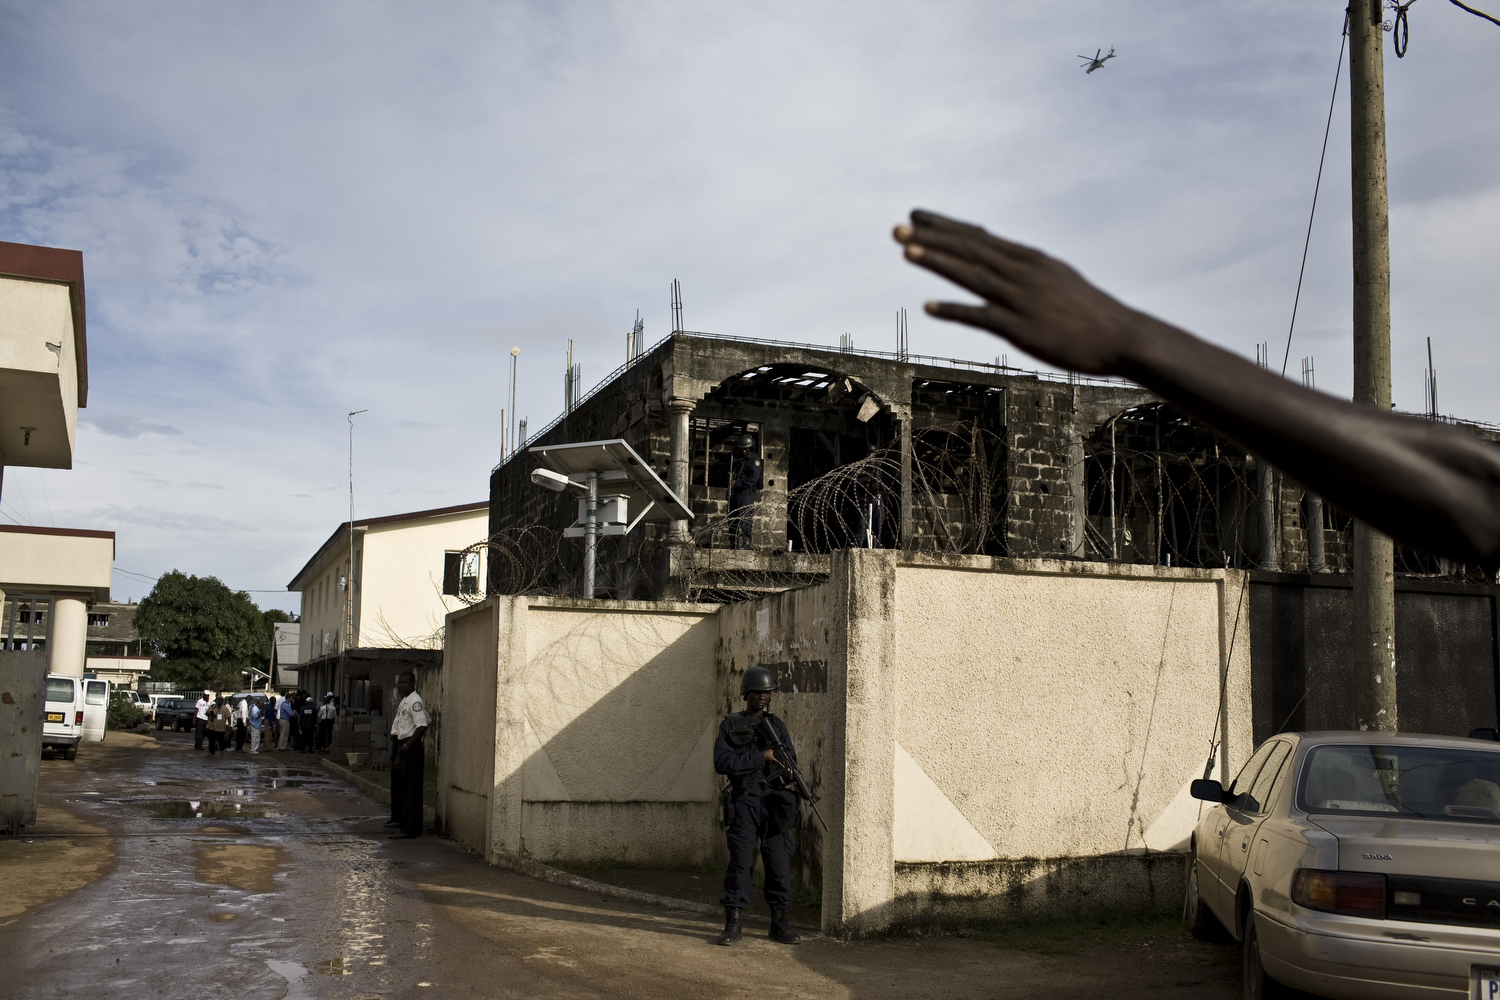 The Liberian military were on alert as U.N. helicopters circled overhead before the announcement of election results. Many feared Liberia would descend back into violence.